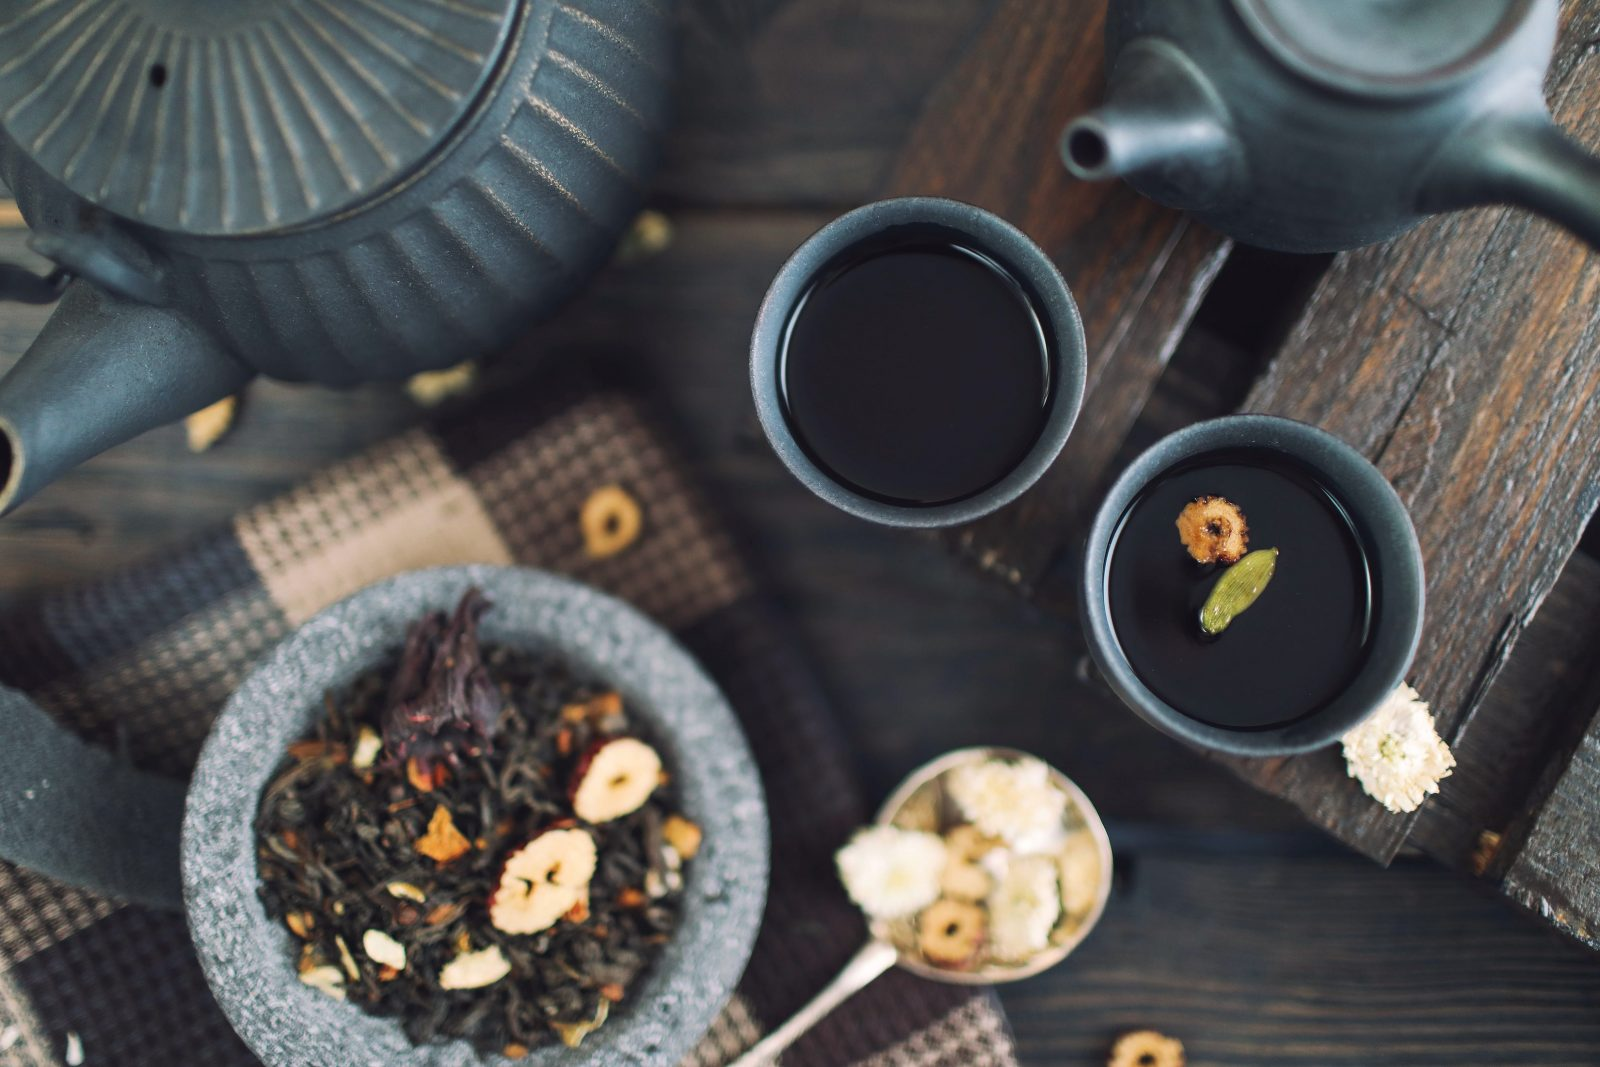 Tea Outdoors - How To Make The Most of Your Awning This Autumn - Awningsouth Blog